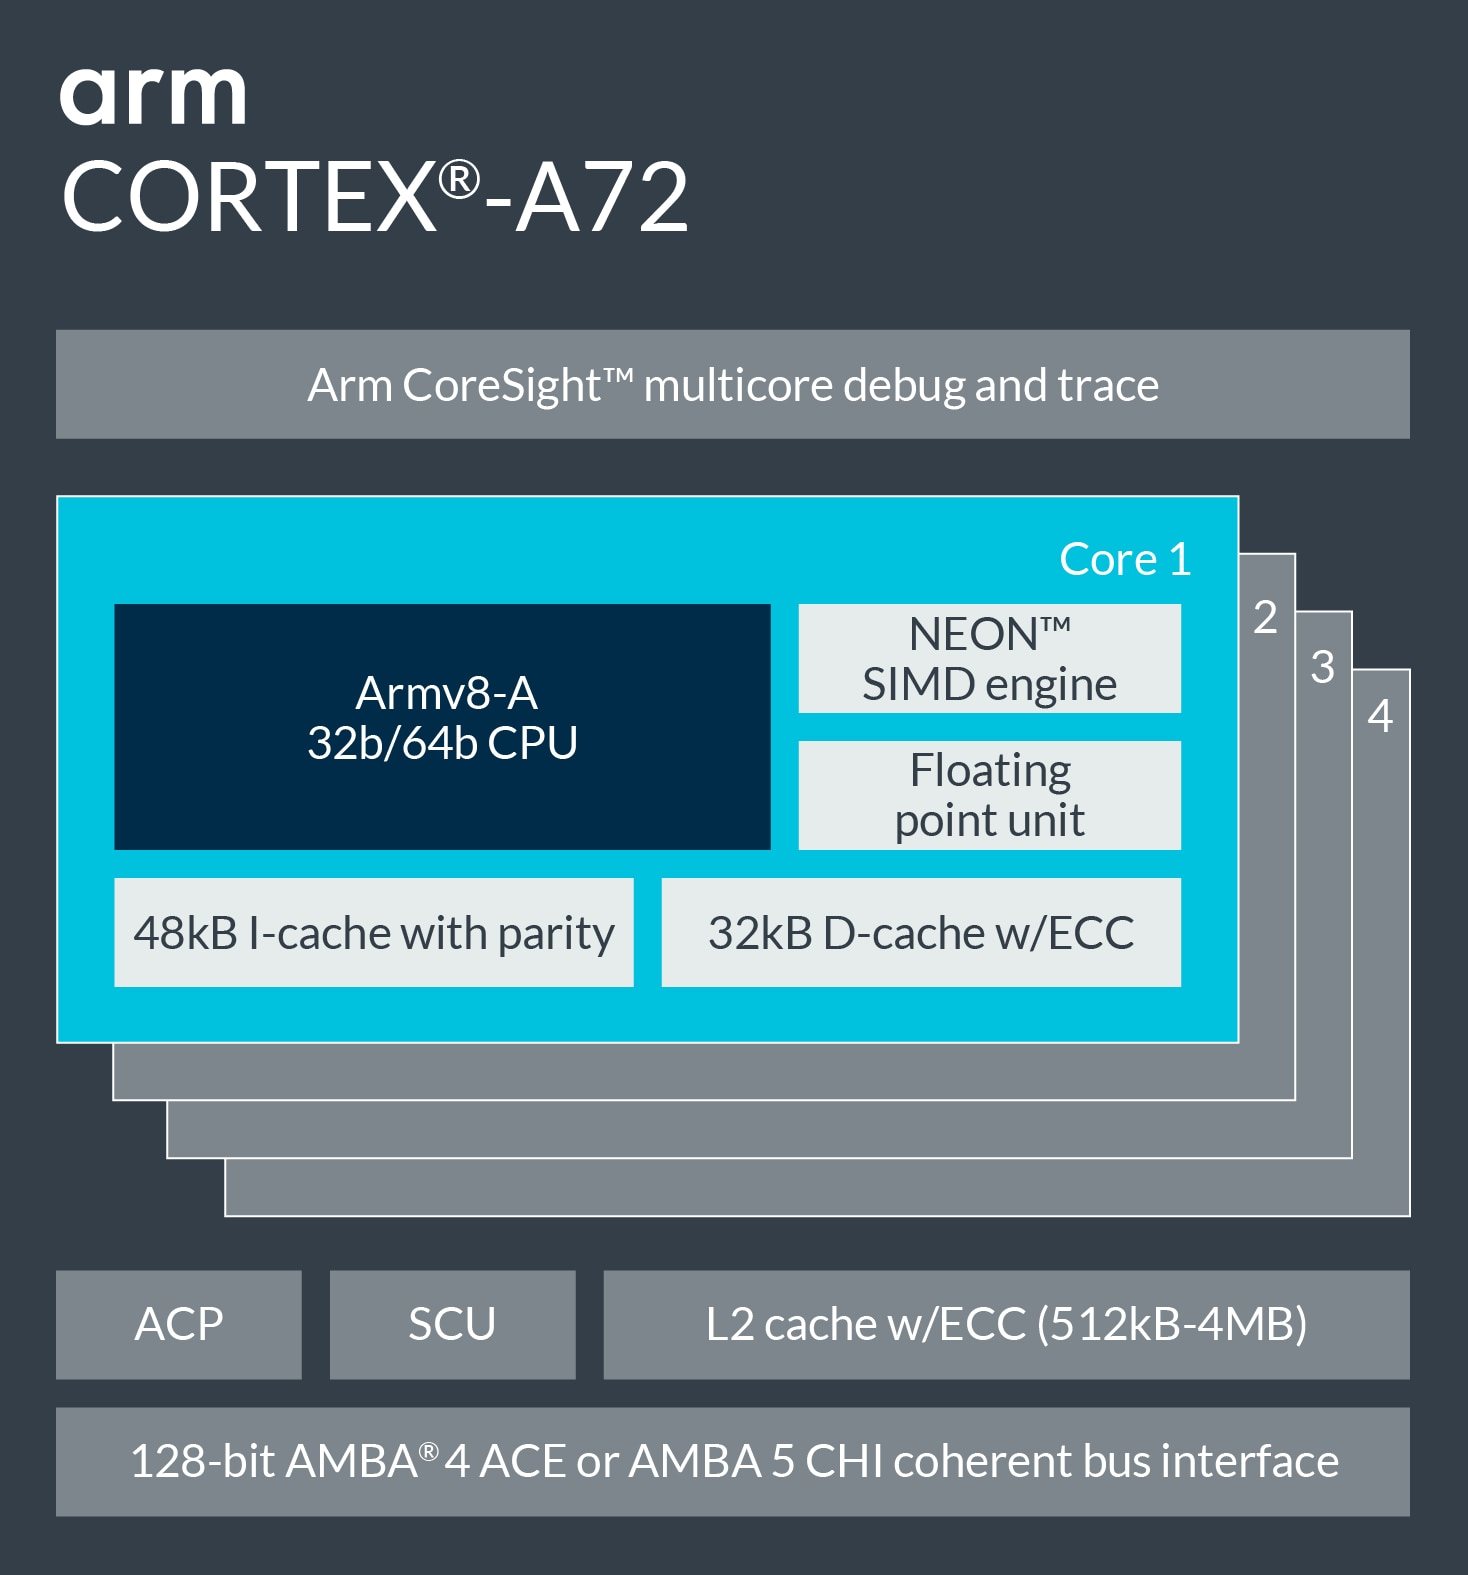 Information on arm Cortex-A72.